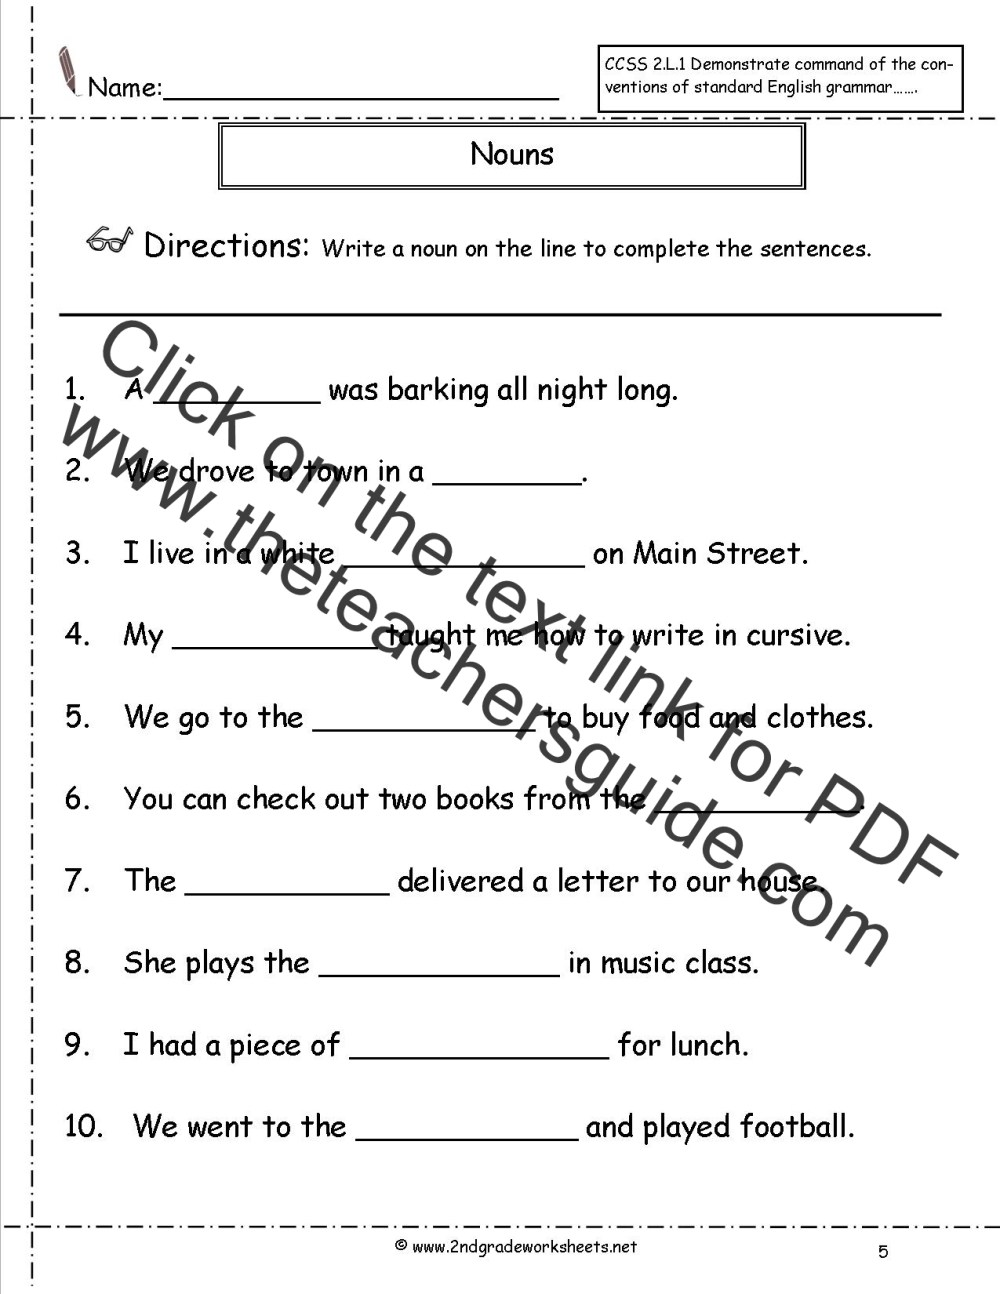 medium resolution of Nouns Worksheets and Printouts